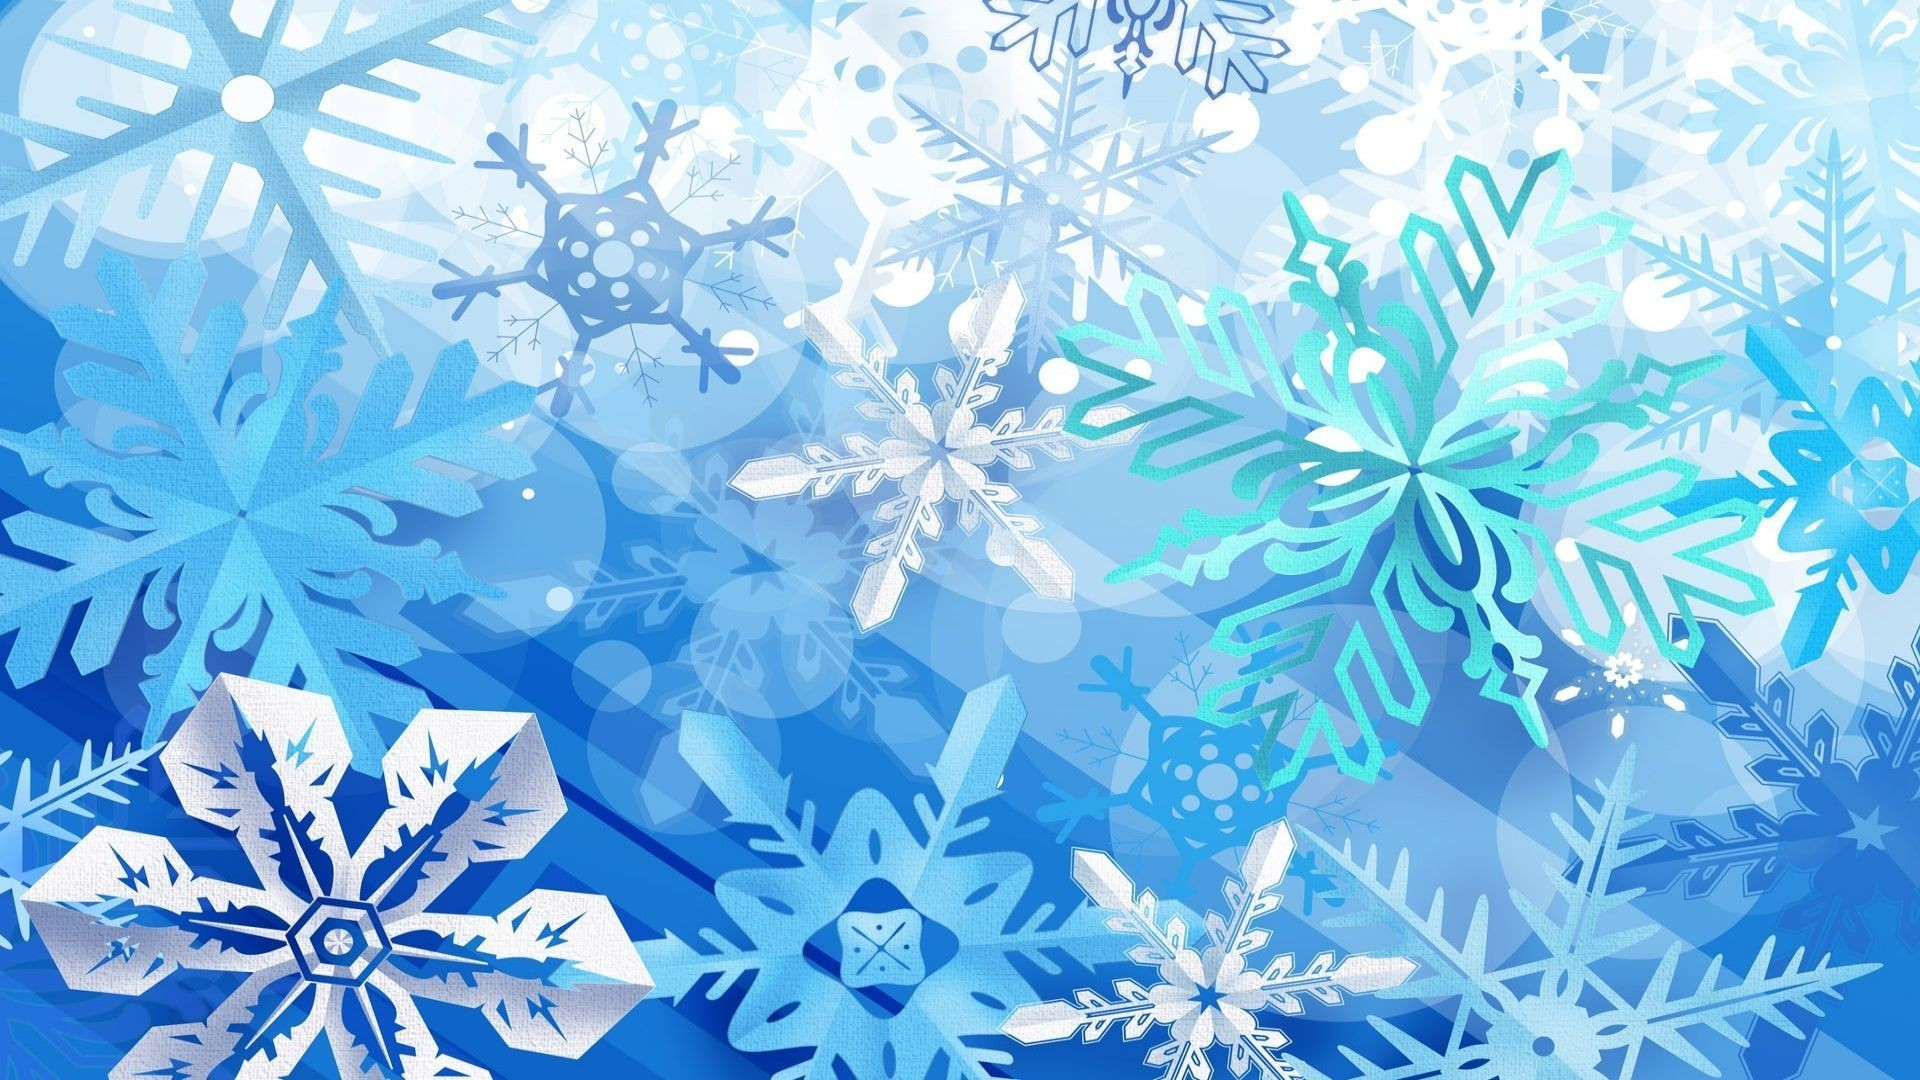 1920x1080 Simple Christmas Snow Backgrounds Backgrounds Snow Ideas Christmas Snow  Backgrounds